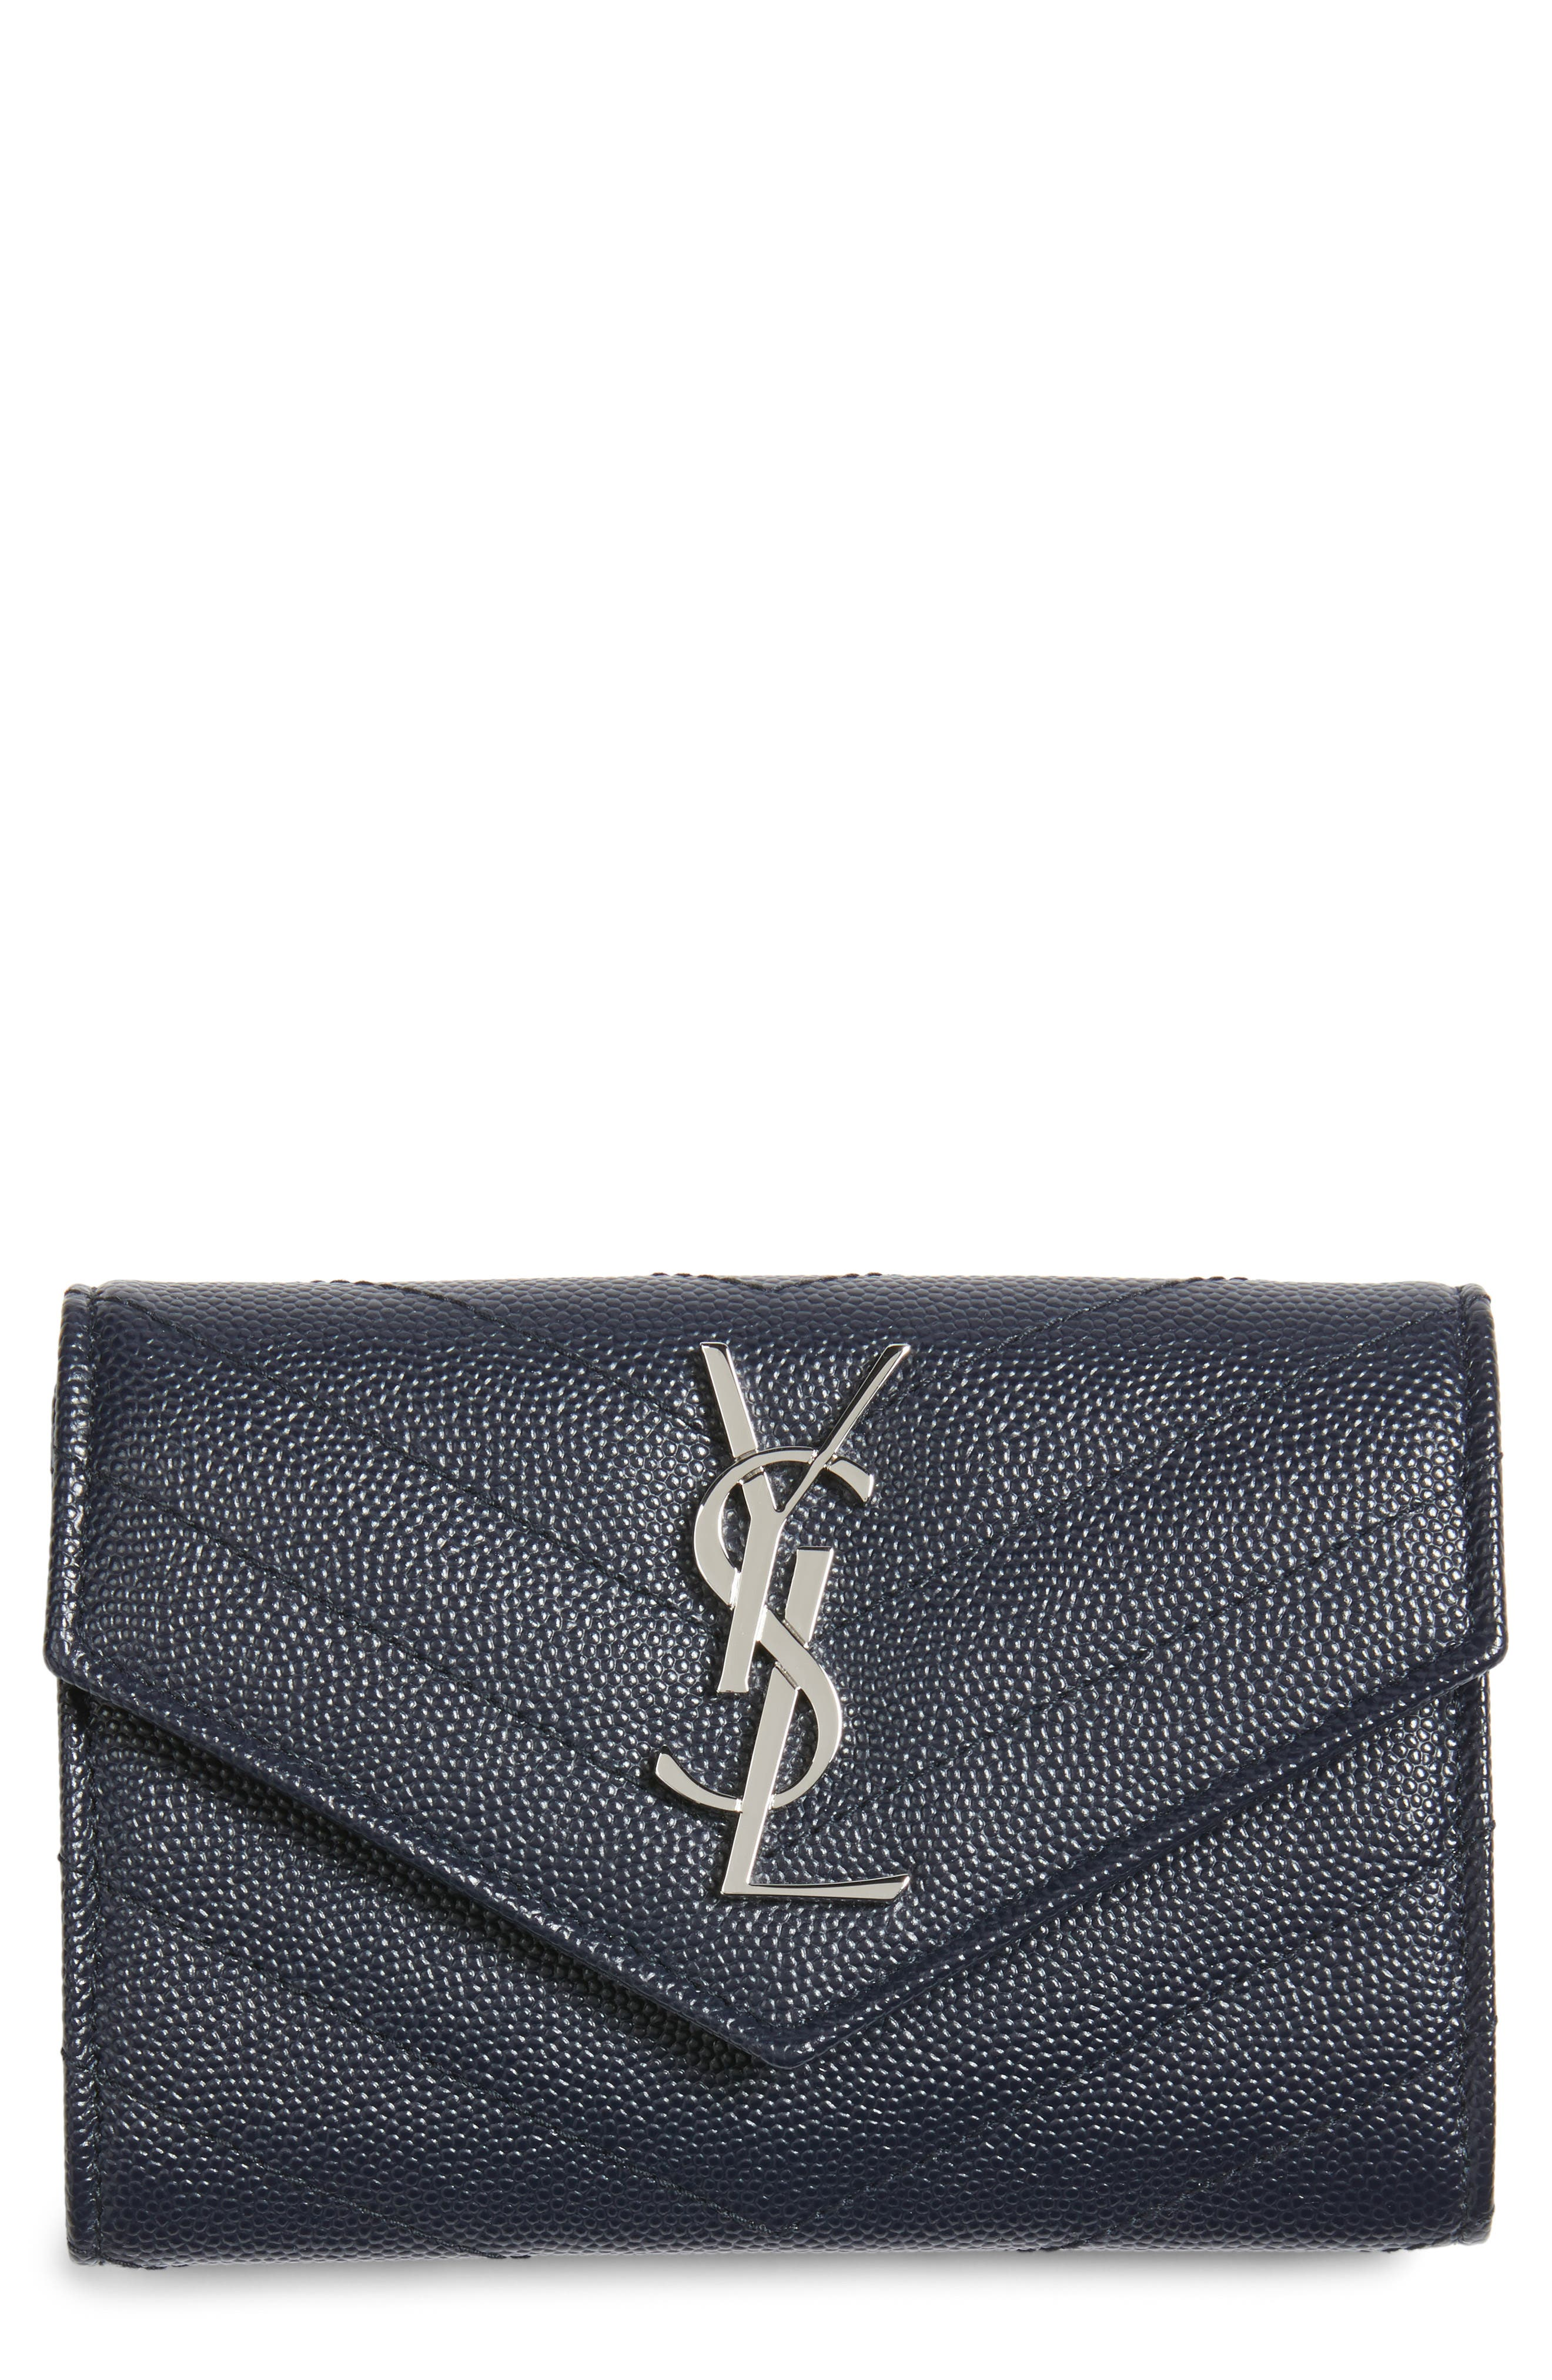 'Small Monogram' Leather French Wallet,                             Main thumbnail 3, color,